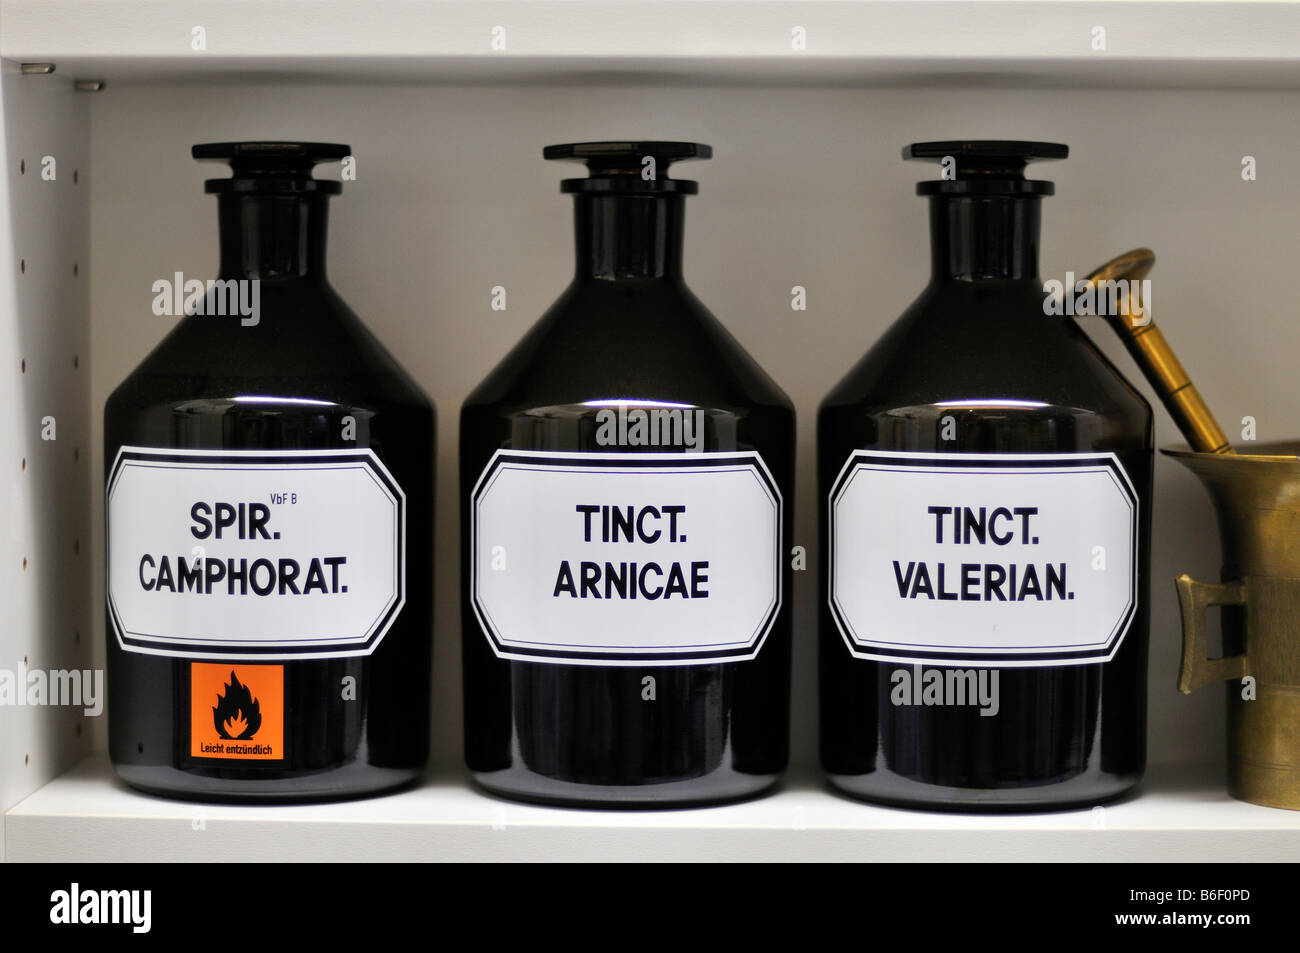 Chemicals in a chemists shop - Stock Image